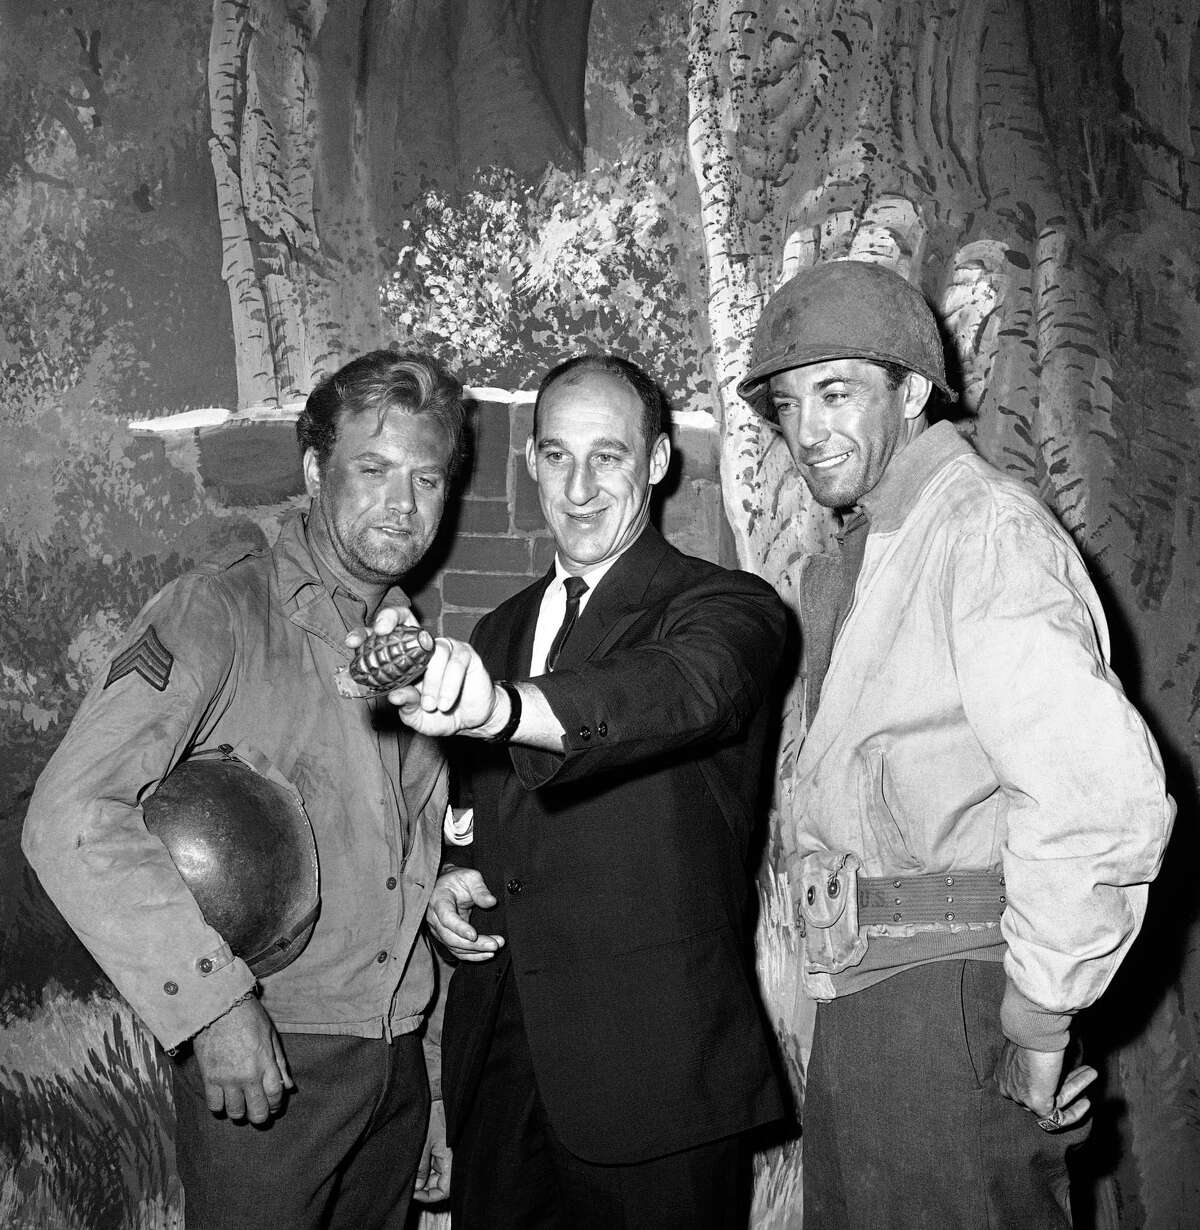 Warren Spahn, Milwaukee Braves pitcher, demonstrates the proper grip for throwing a curve with a grenade to actors Vic Morrow, left, and Rick Jason on the set of the television show,